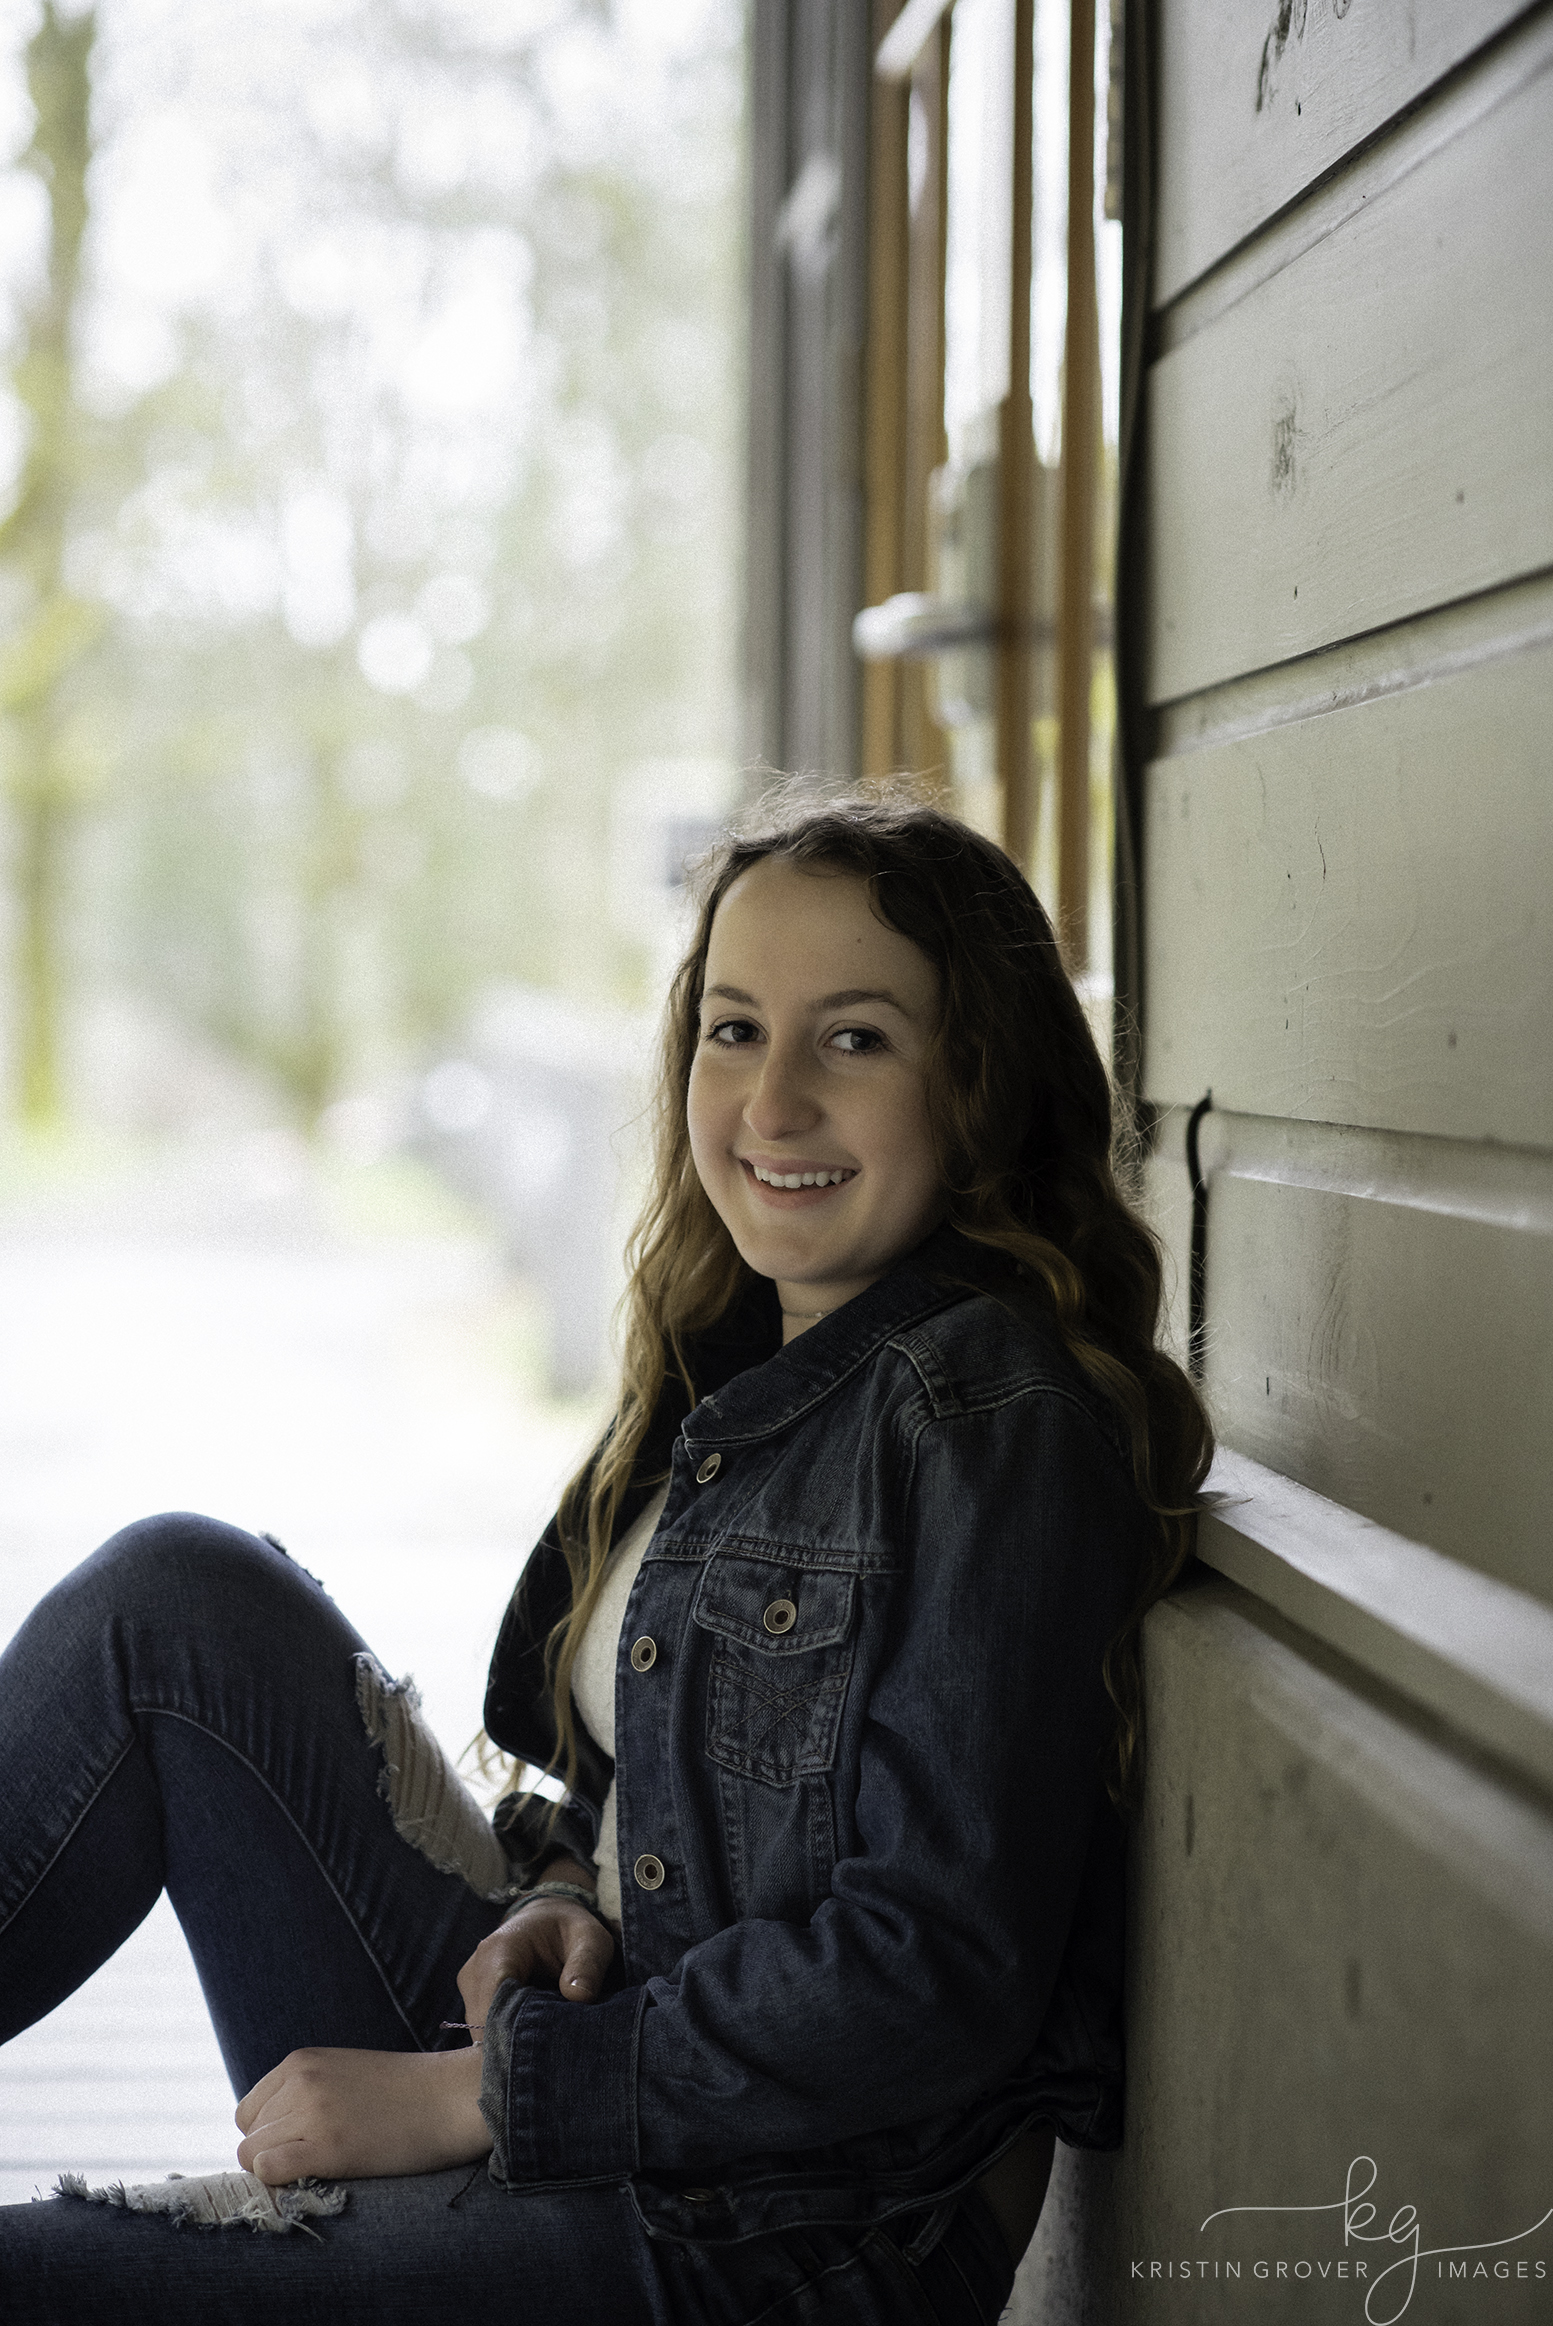 Seniorphotos-kristingroverimages-2.jpg